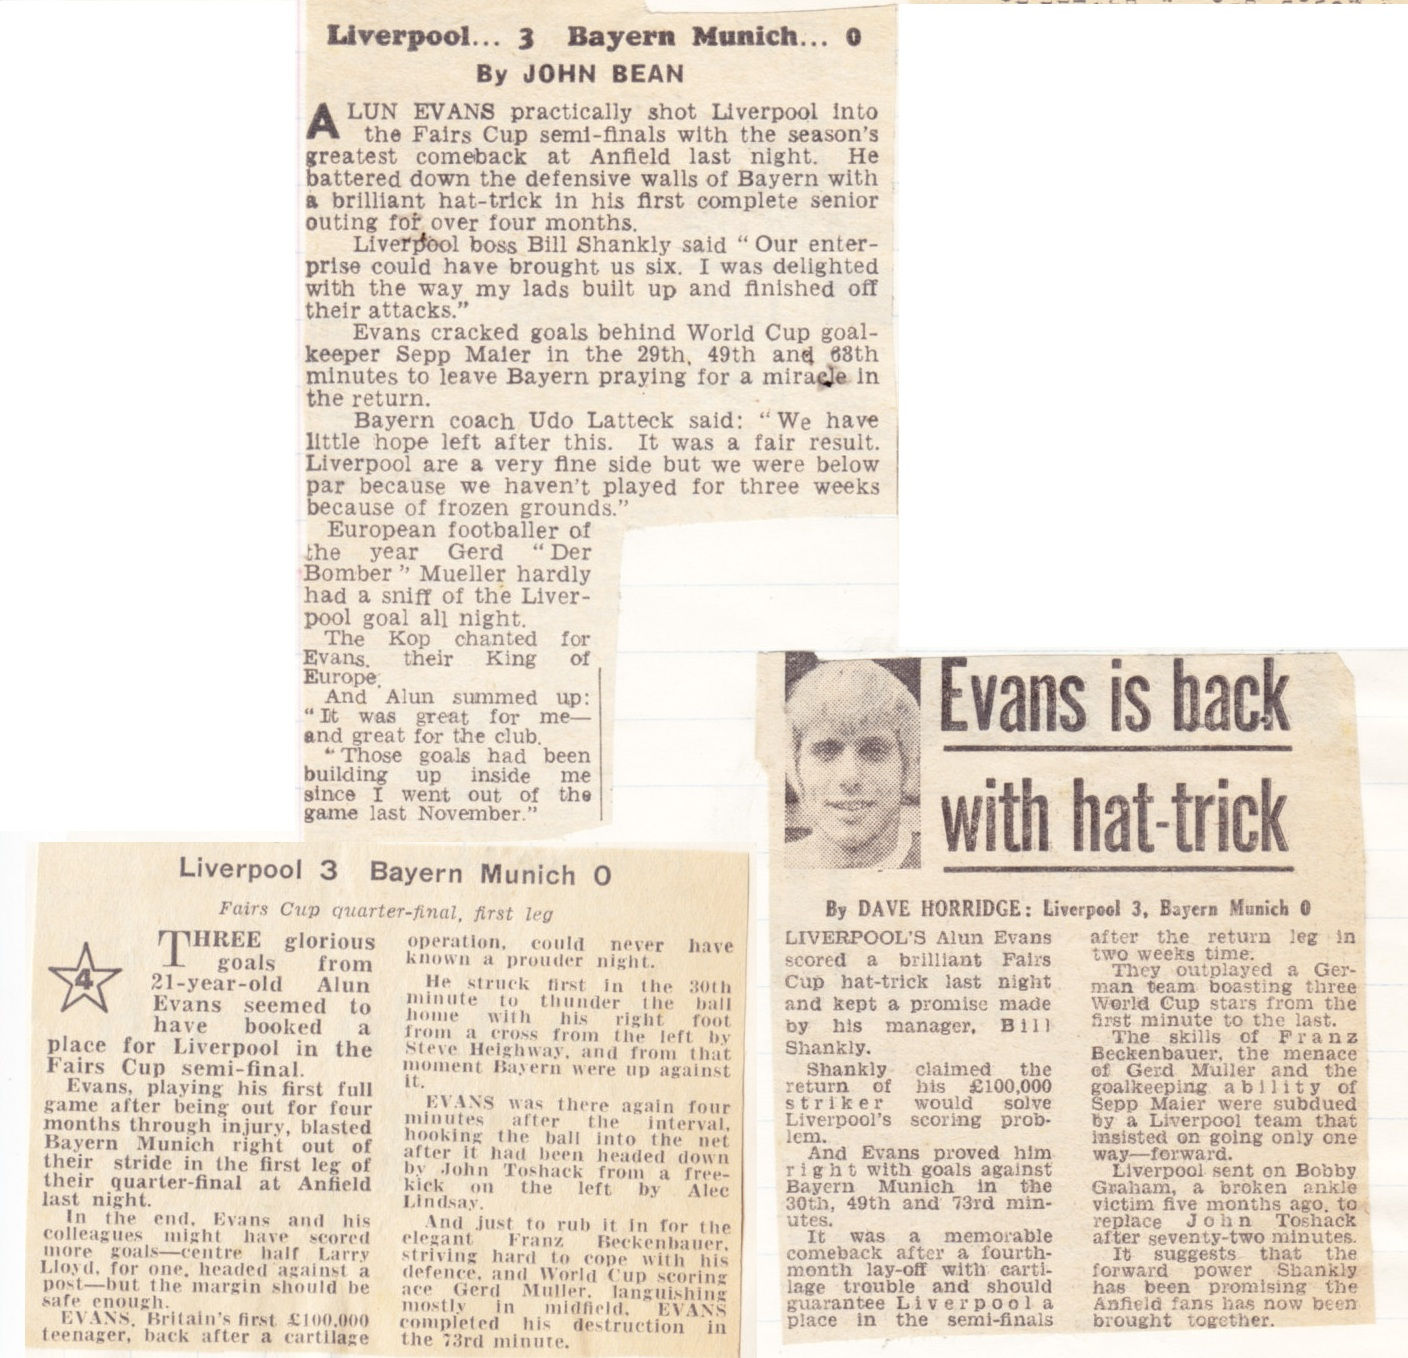 Evans back with a hat-trick! - 10 March 1971